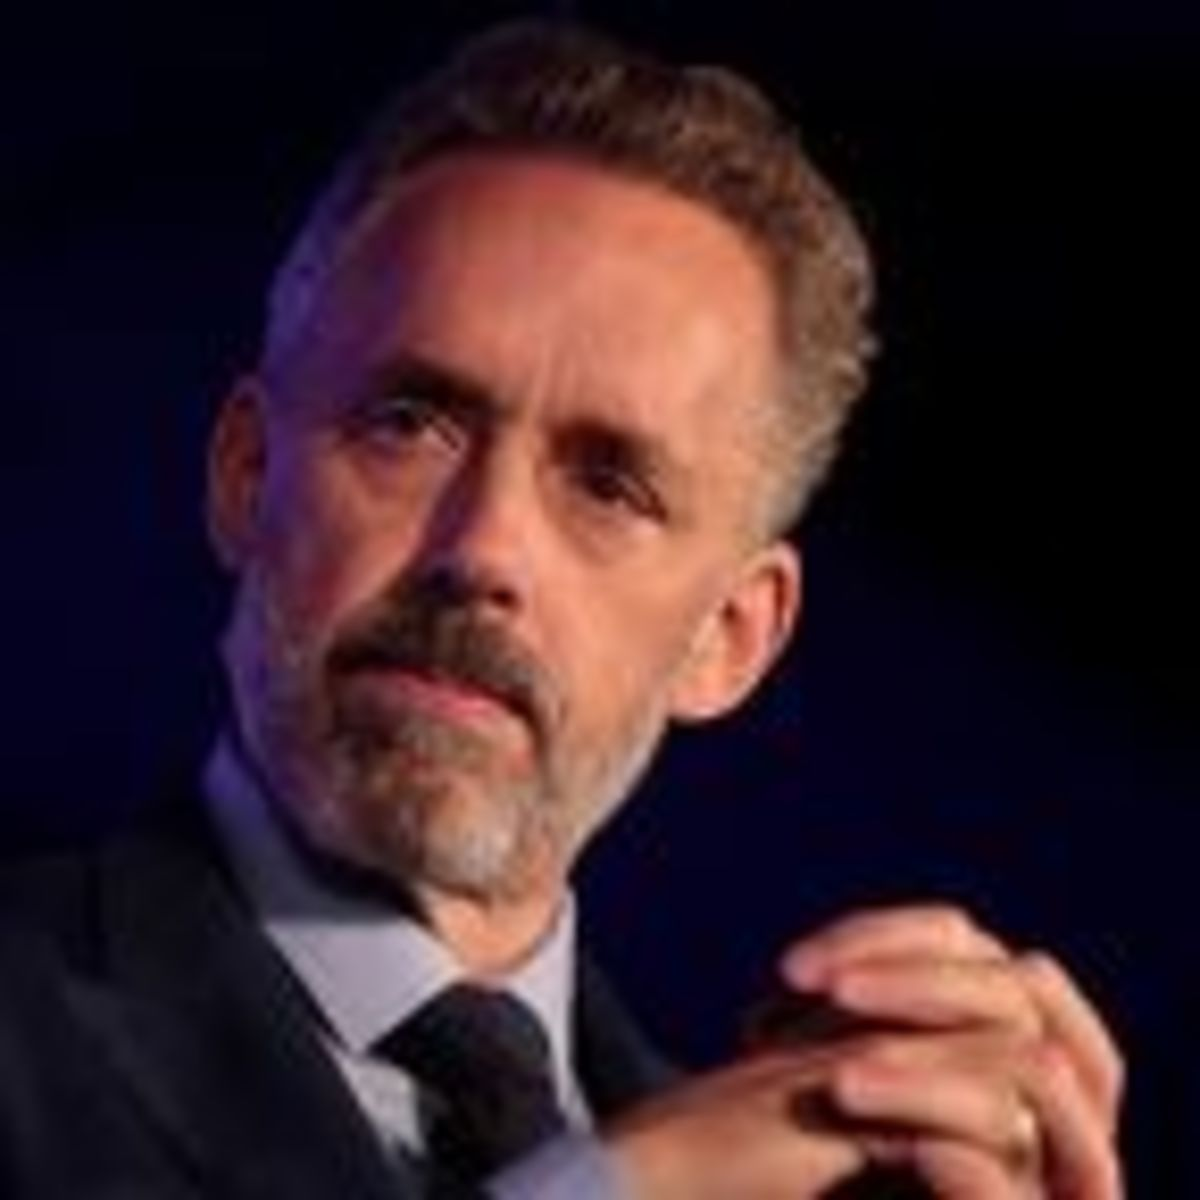 Jordan Peterson on Diversity, Inclusivity, and Equity | Psychology Today